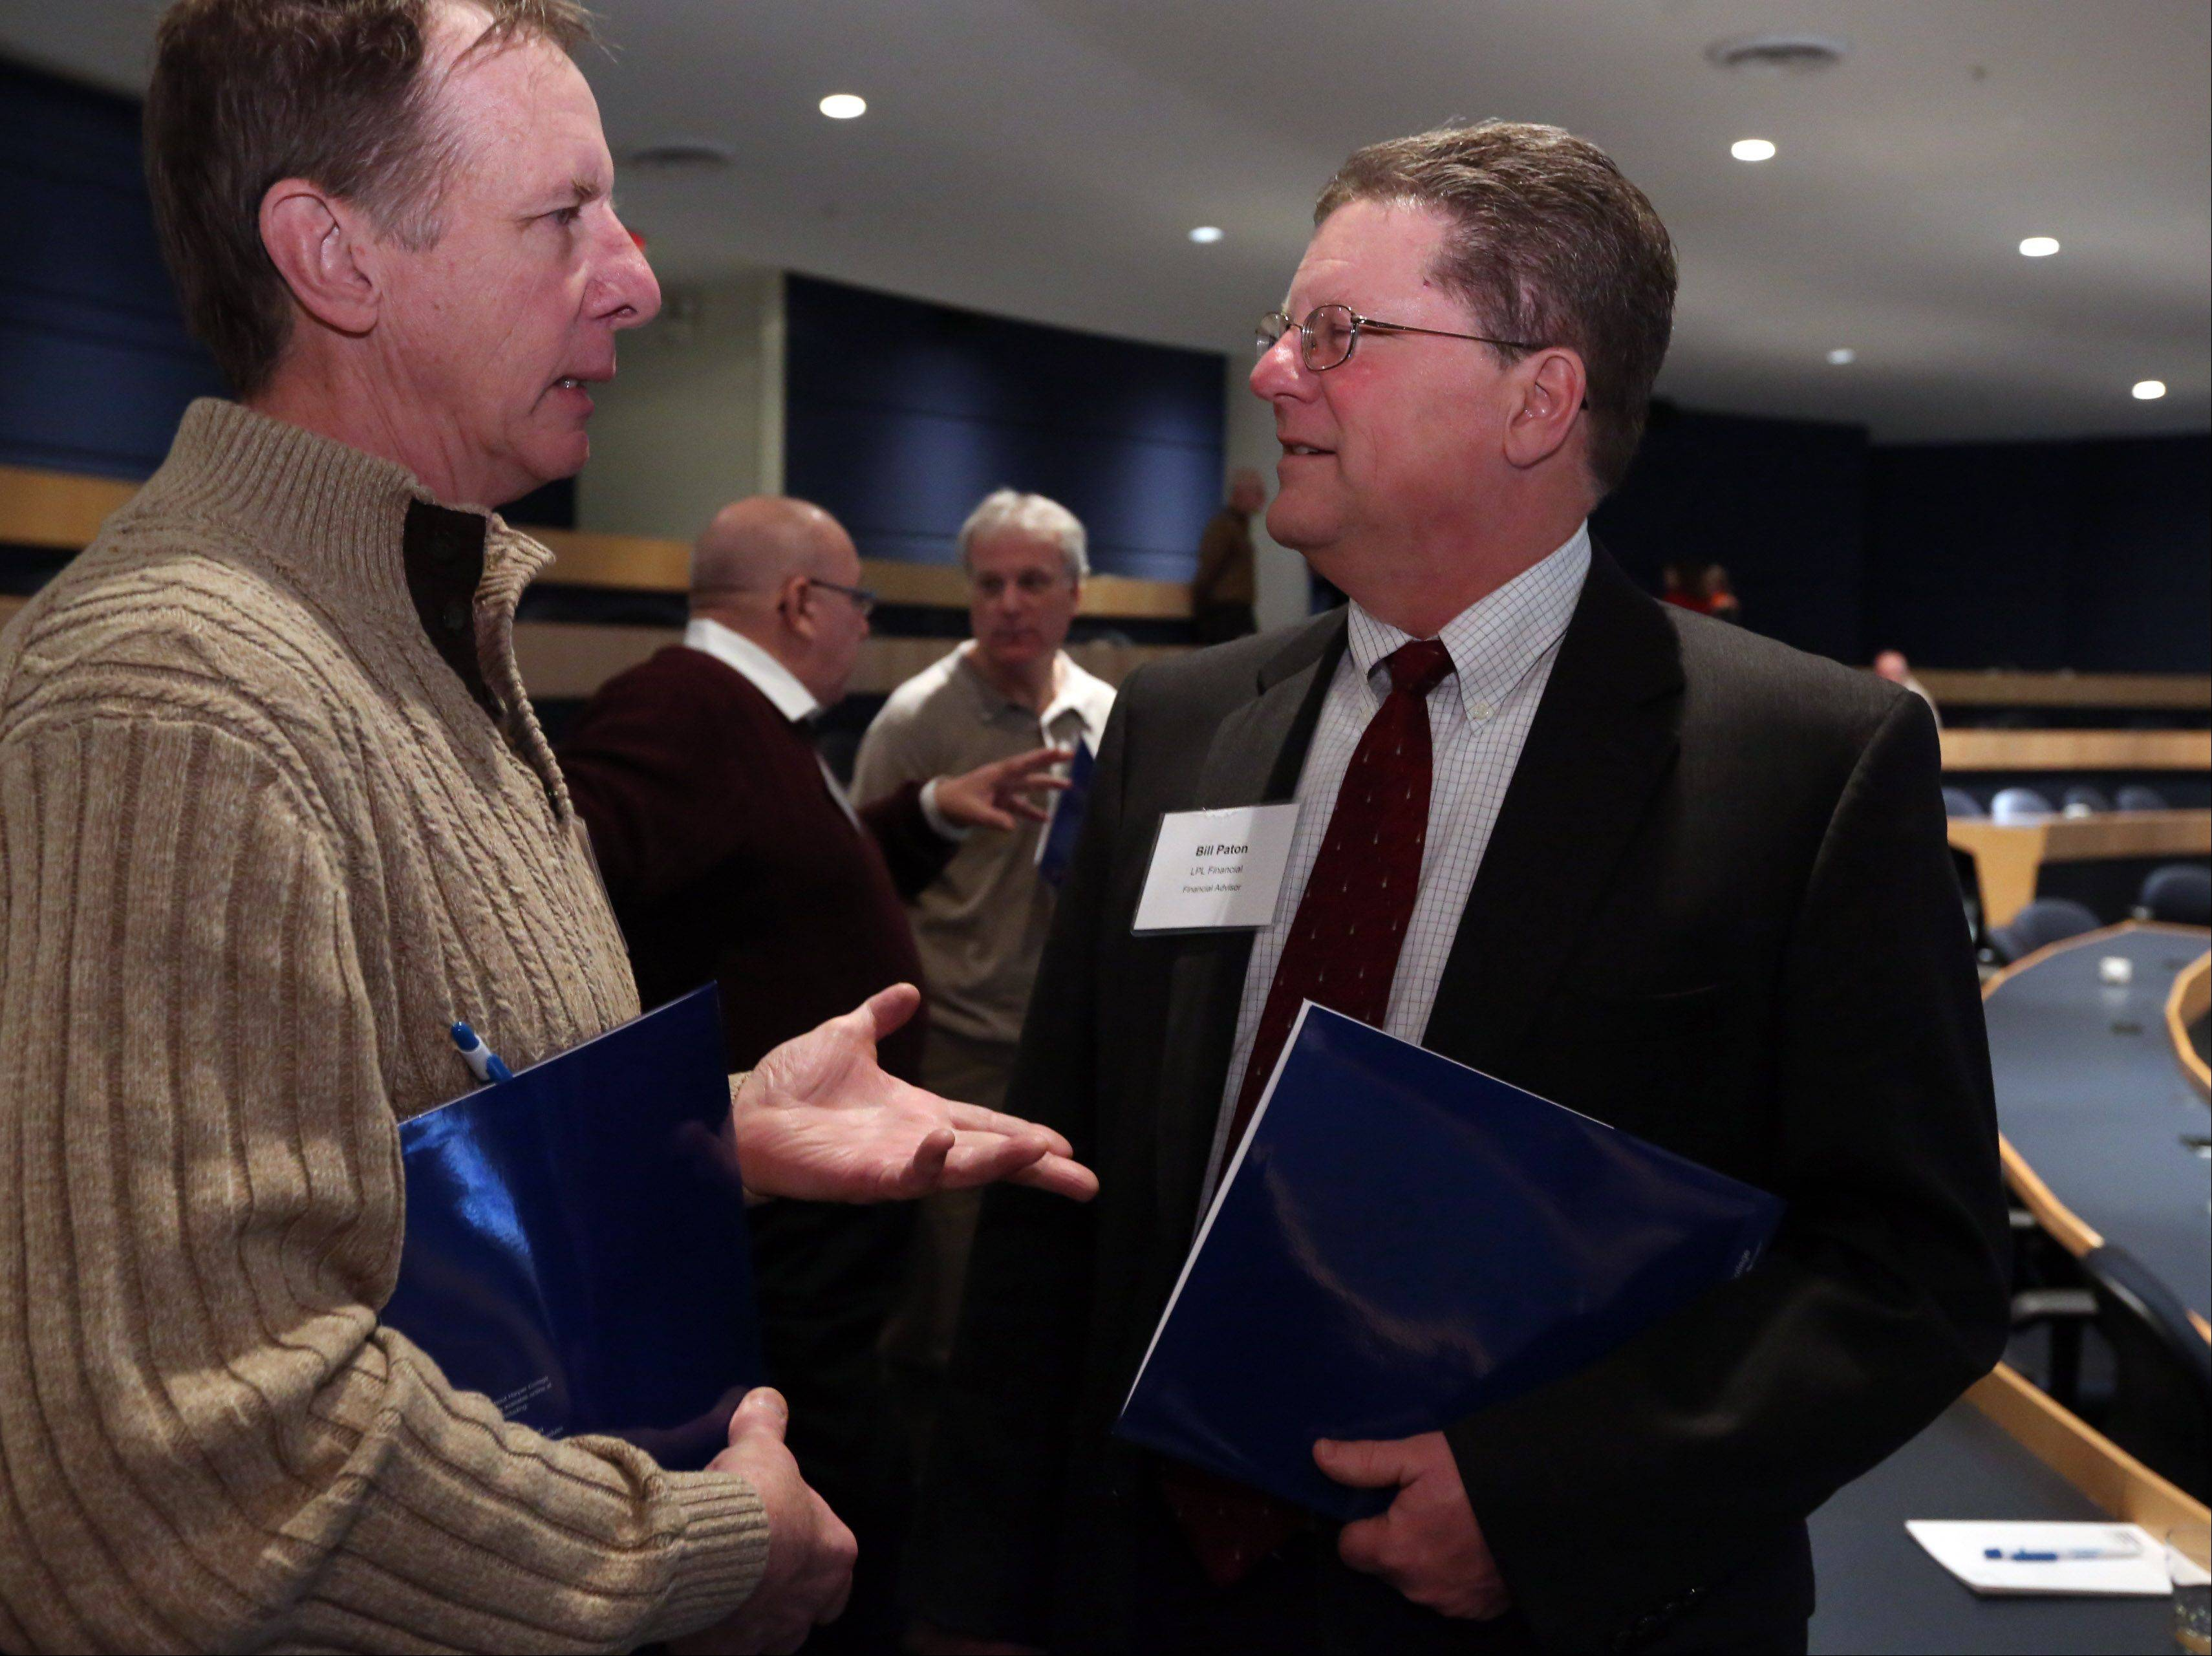 James Nielsen, owner of Handyman Jim, left, speaks with Bill Paton, financial advisor for LPL Financial, after an economic outlook breakfast at the Wojcik Conference Center at Harper College on Thursday in Palatine.